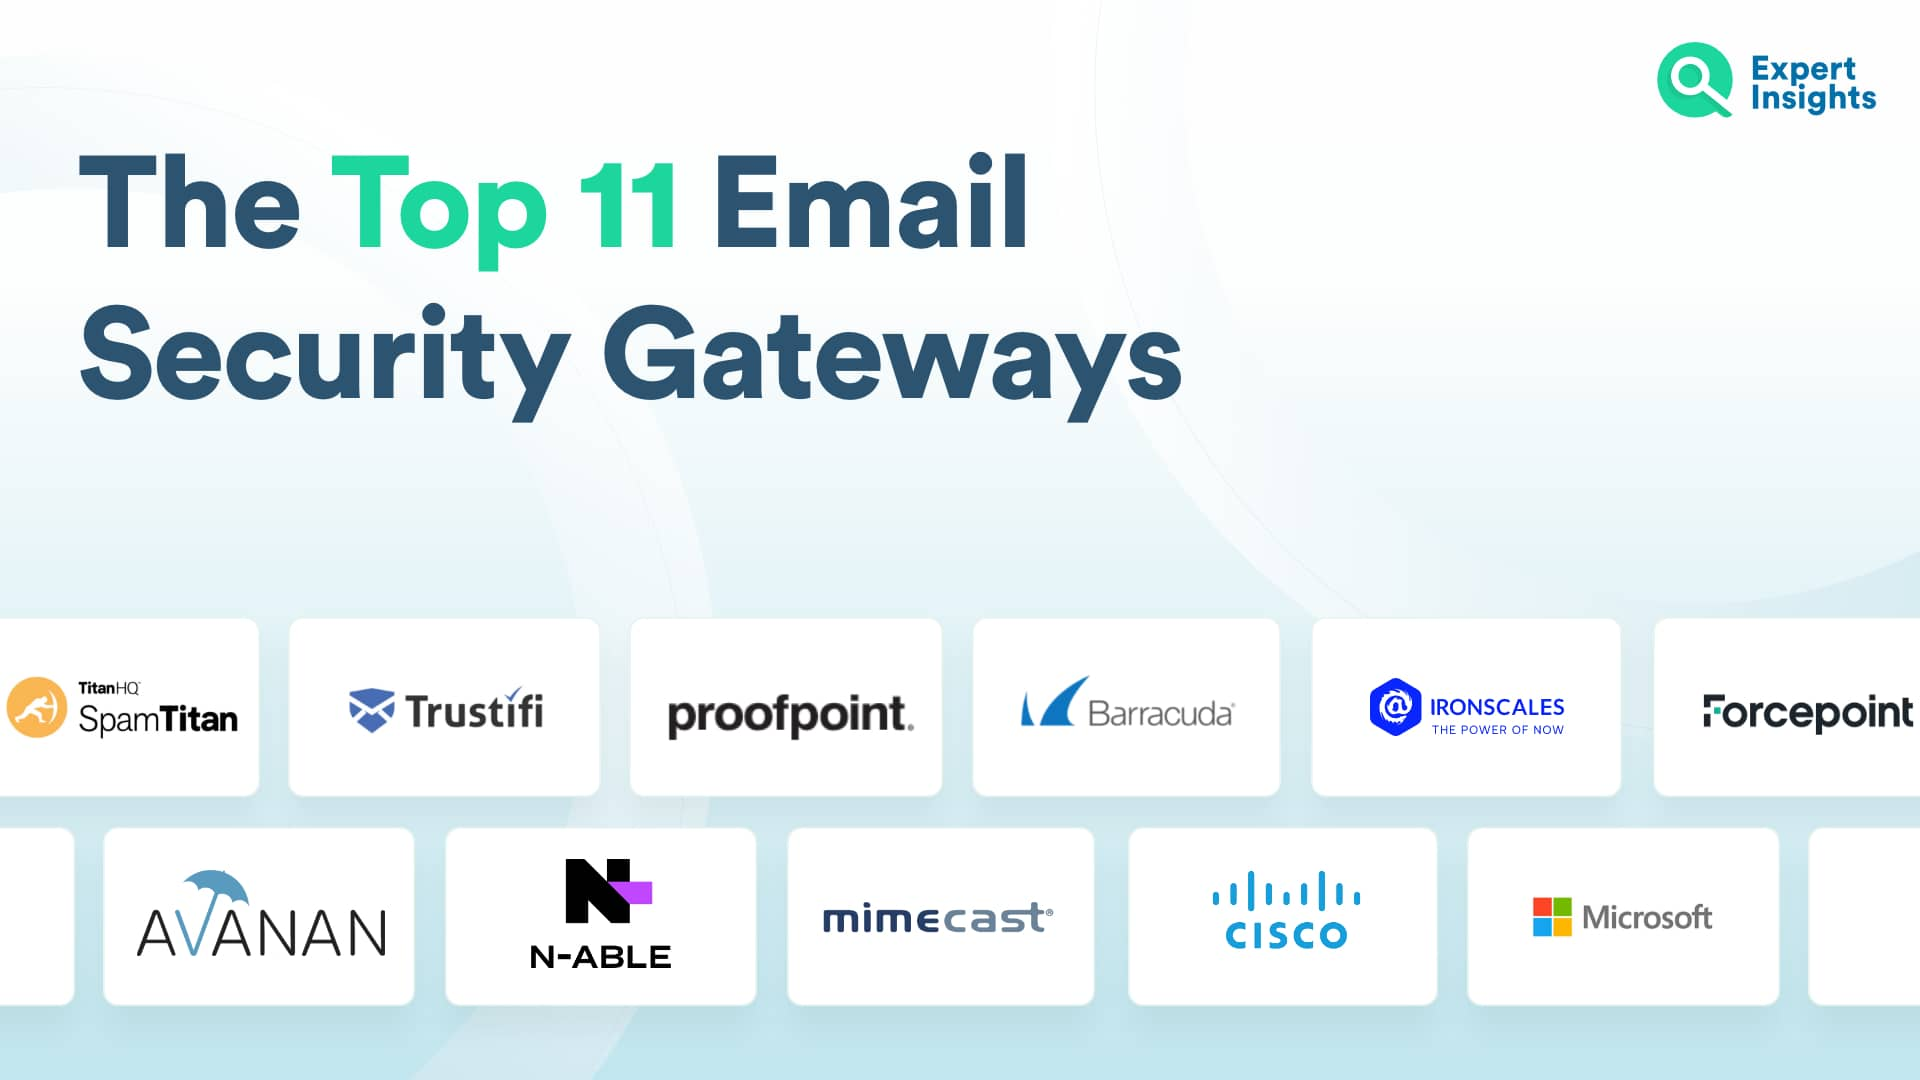 The Top 11 Best Secure Email Gateway Platforms - Expert Insights